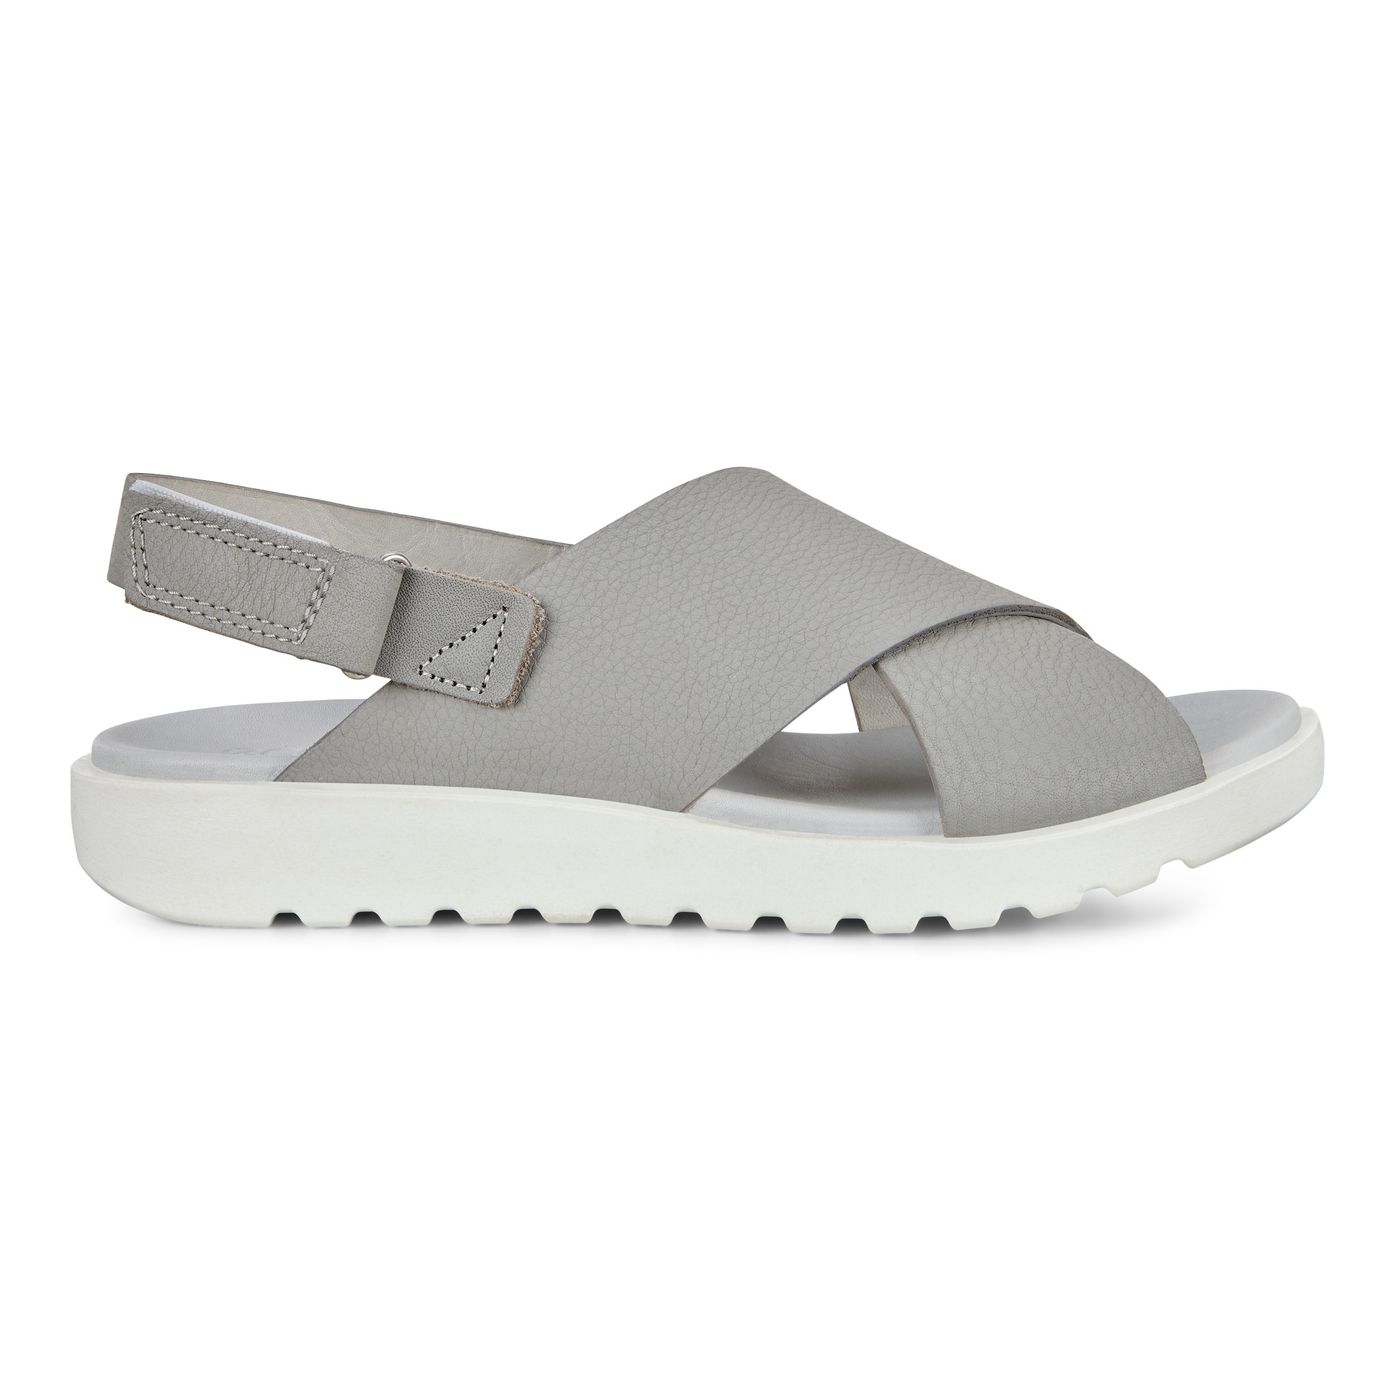 ECCO Freja Slide Sandal II | Women's Sandals | ECCO® Shoes